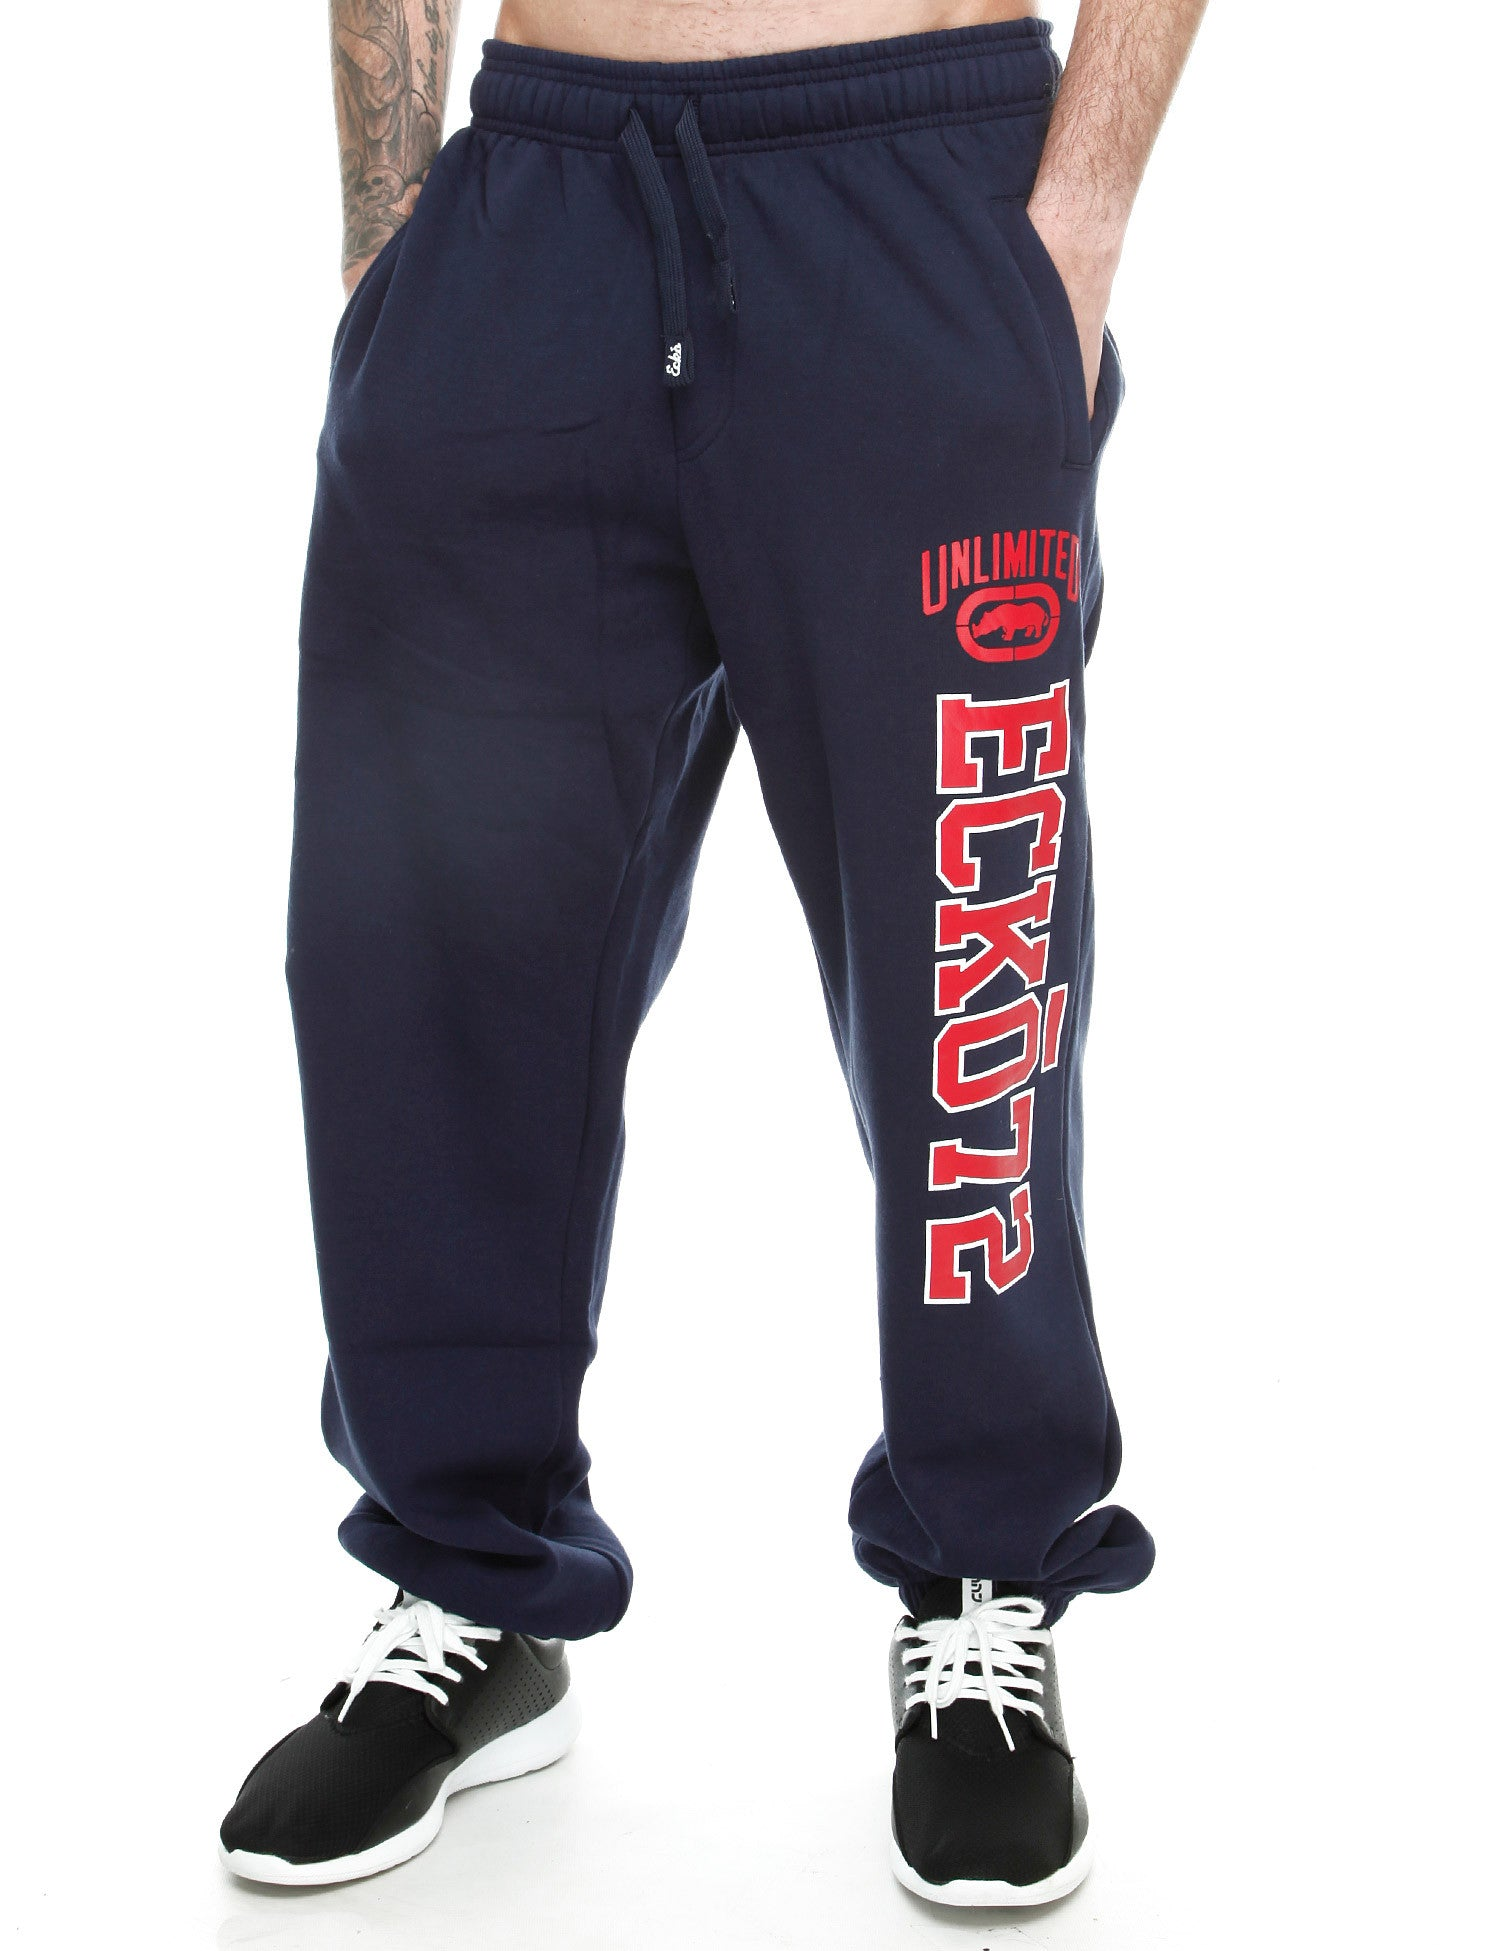 Image of Ecko Vogue Sweatpant ESK03646 Peacoat Navy